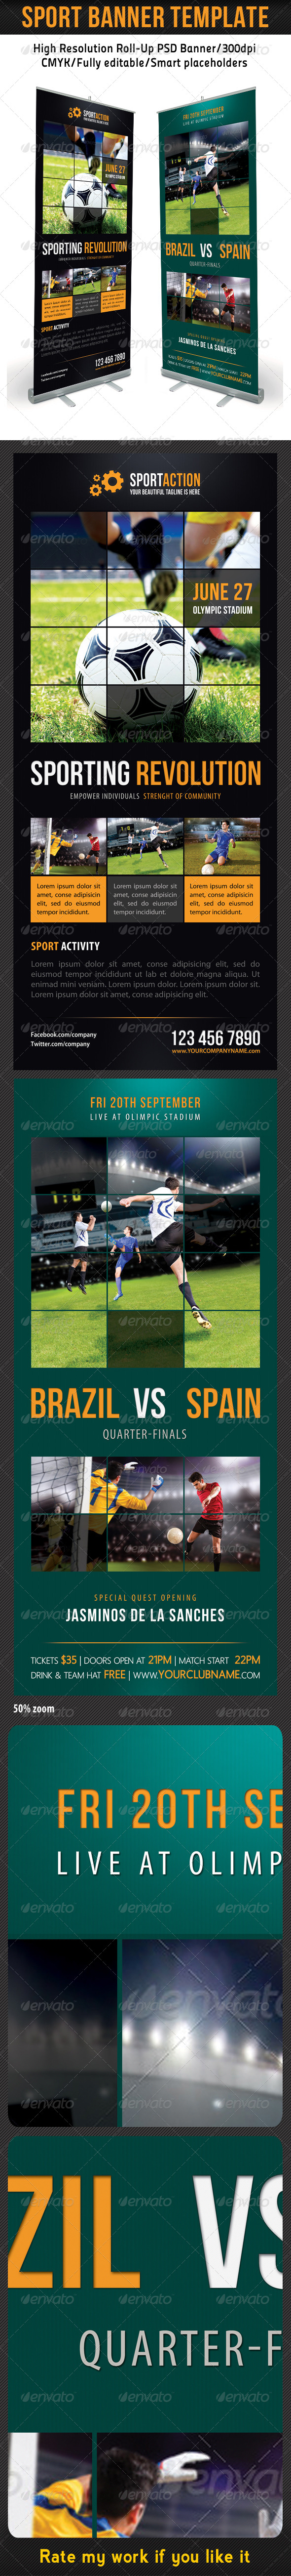 Sport Banner Template 11 - Signage Print Templates